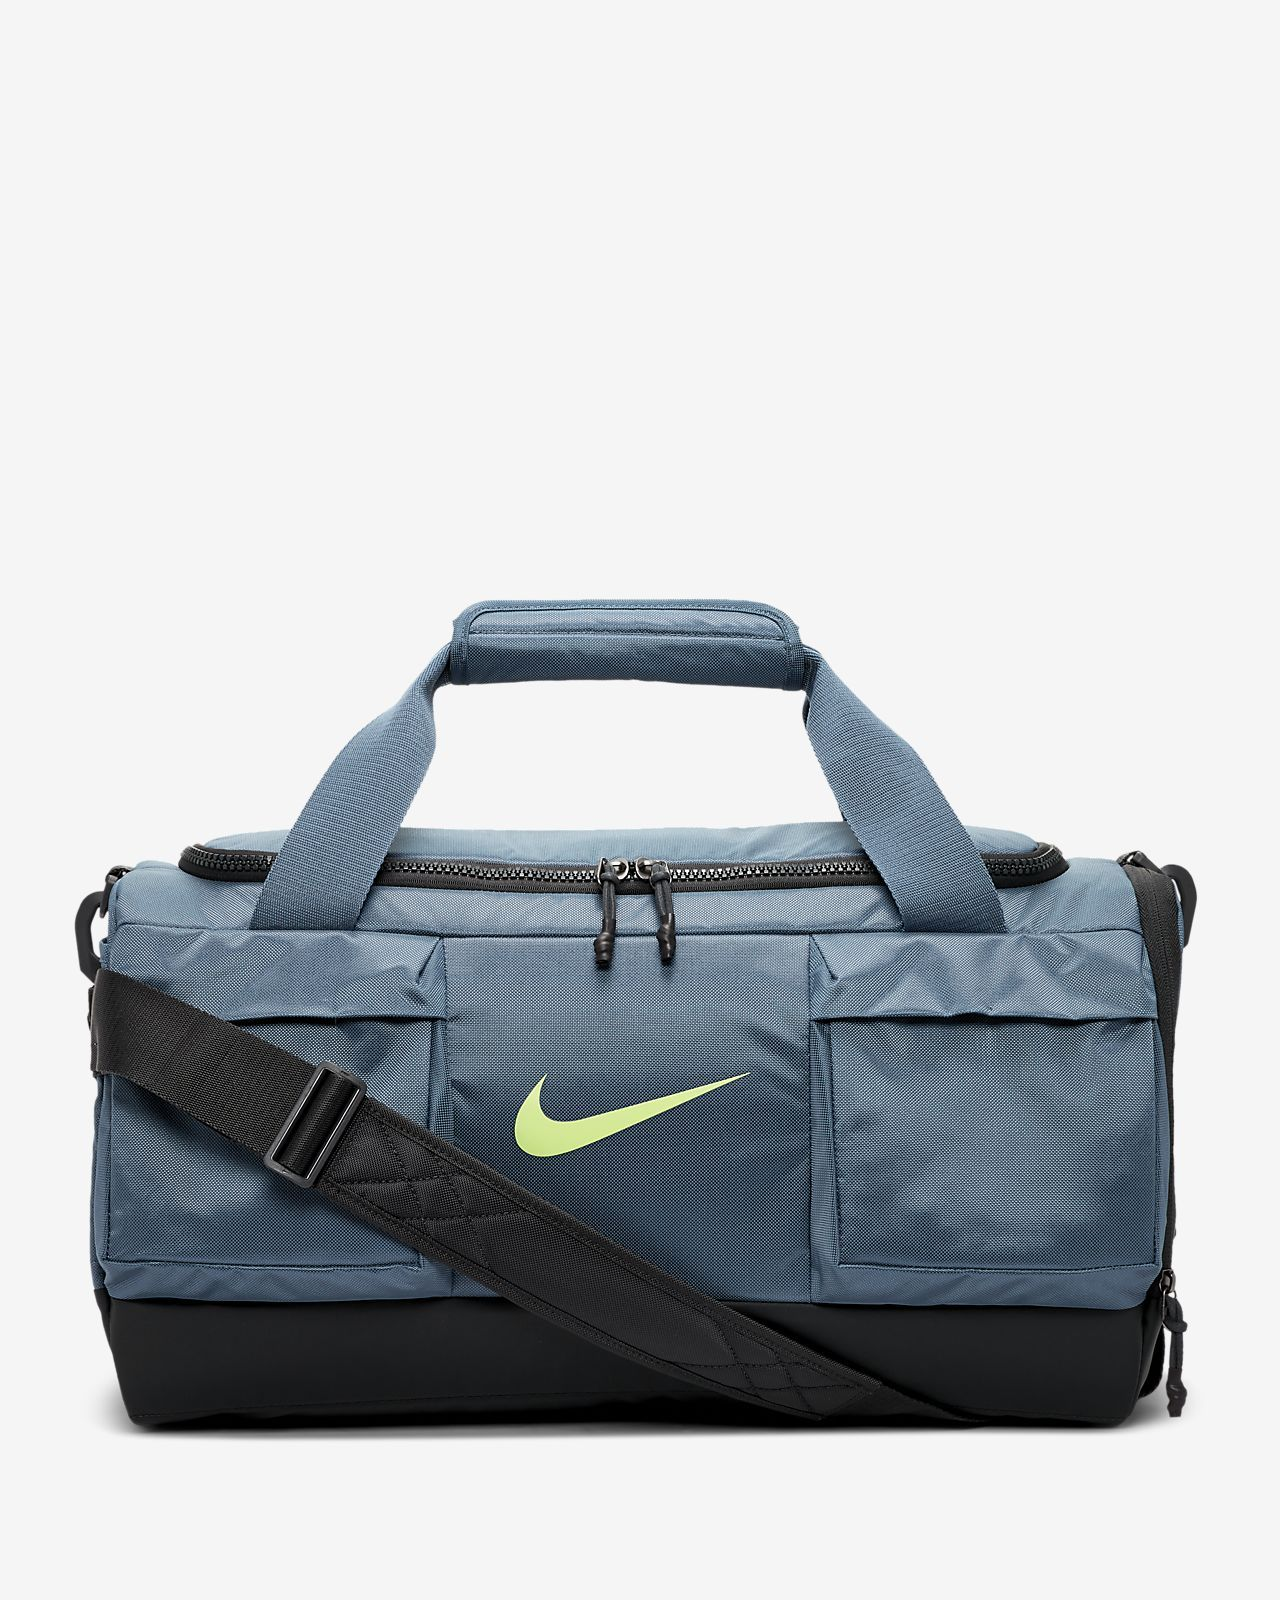 best mens duffle bag with laptop compartment